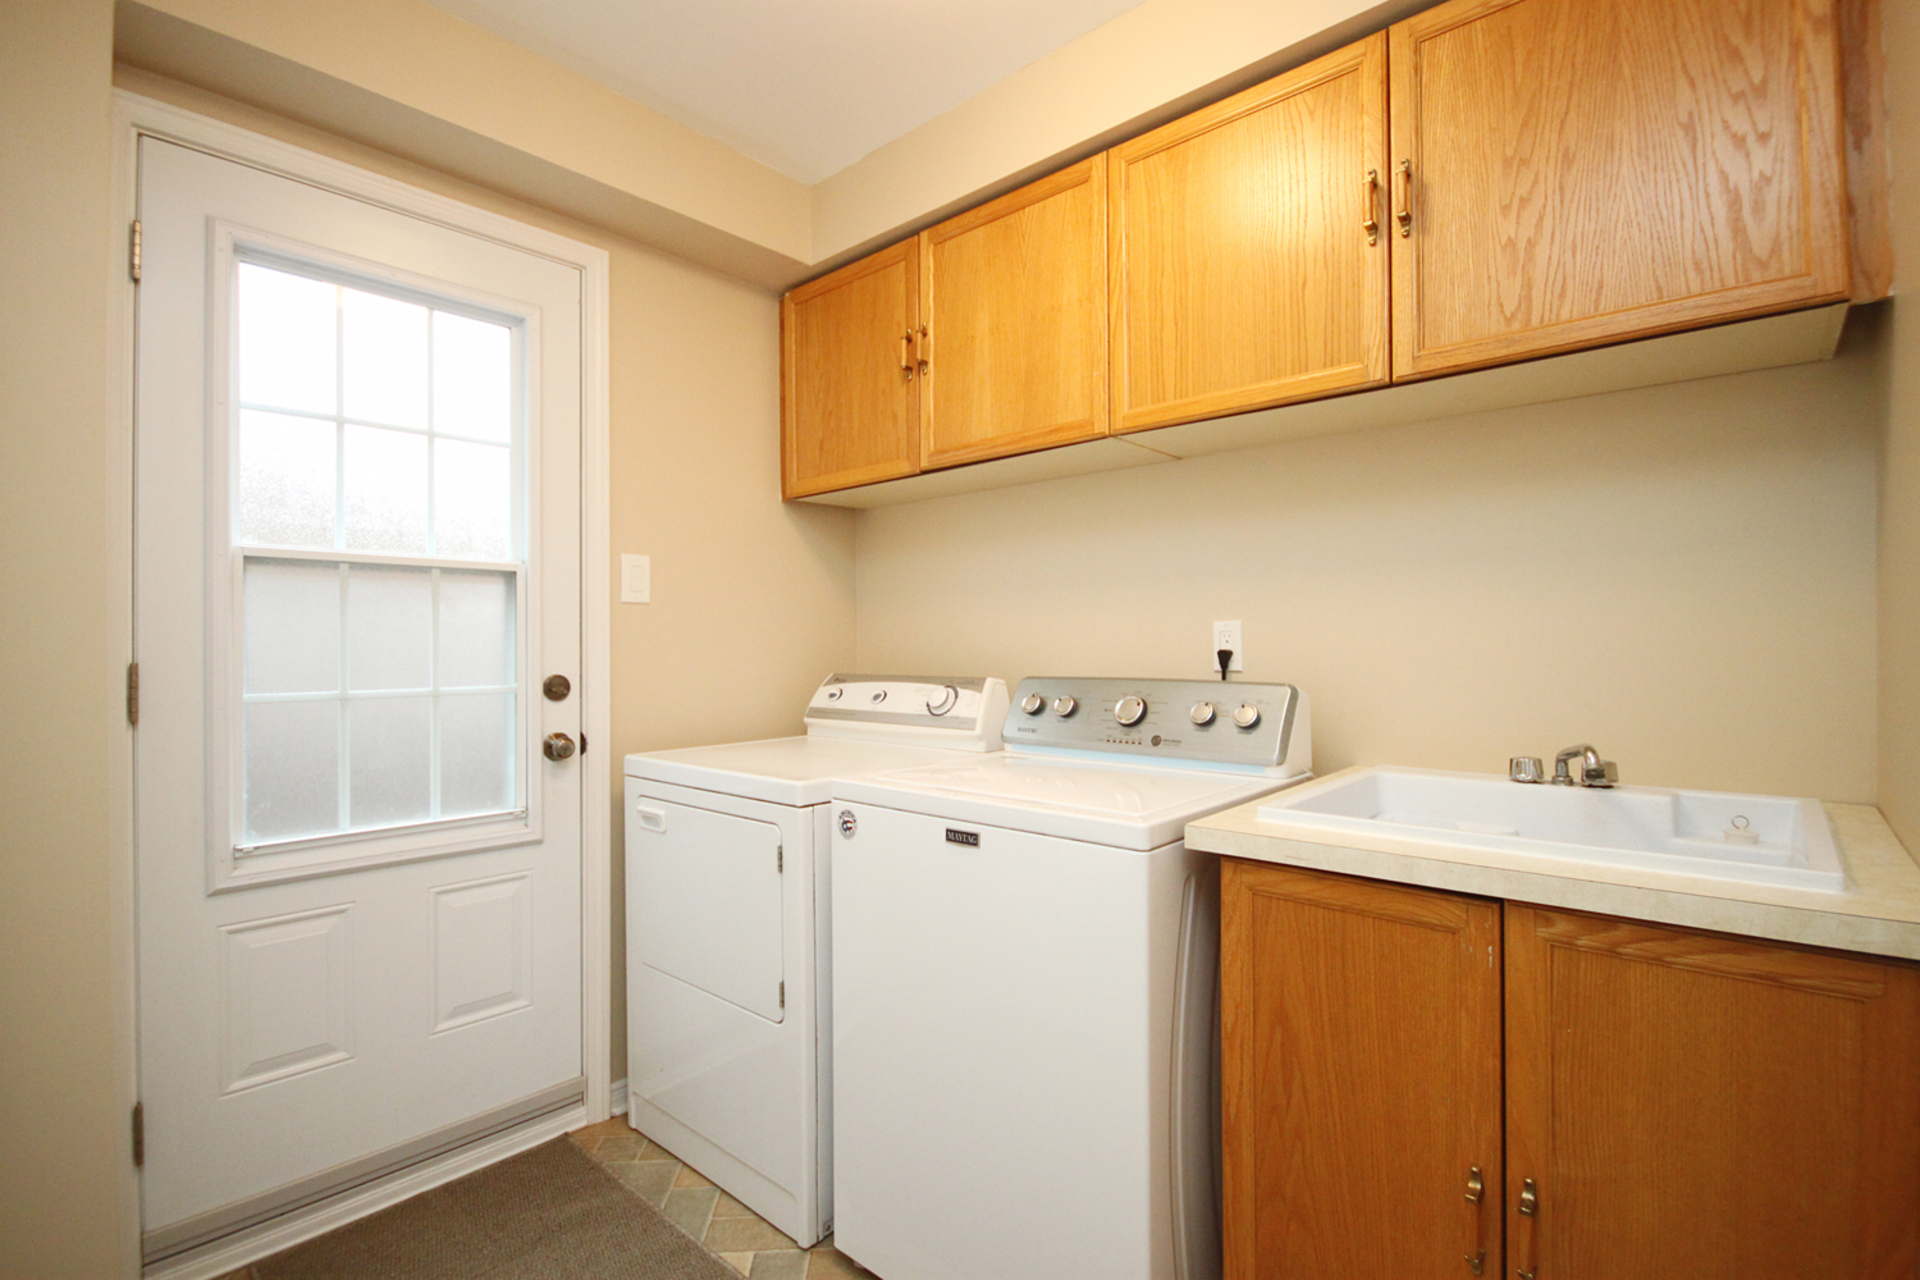 Laundry Room at 1182 Maple Gate Road, Liverpool, Pickering